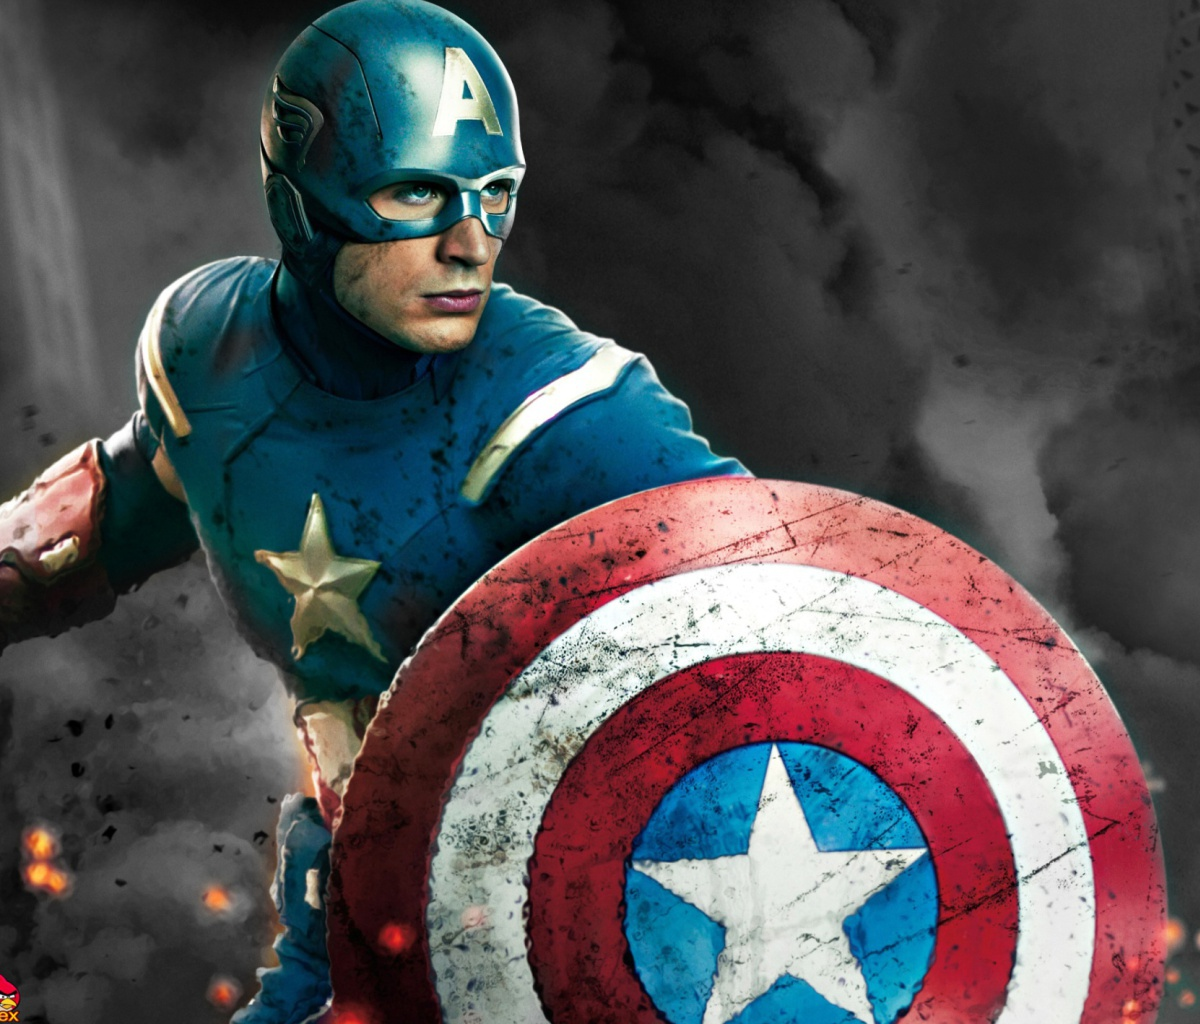 Tags Captain America The Avengers 2012 1200x1024 wallpaper1200X1024 1200x1024